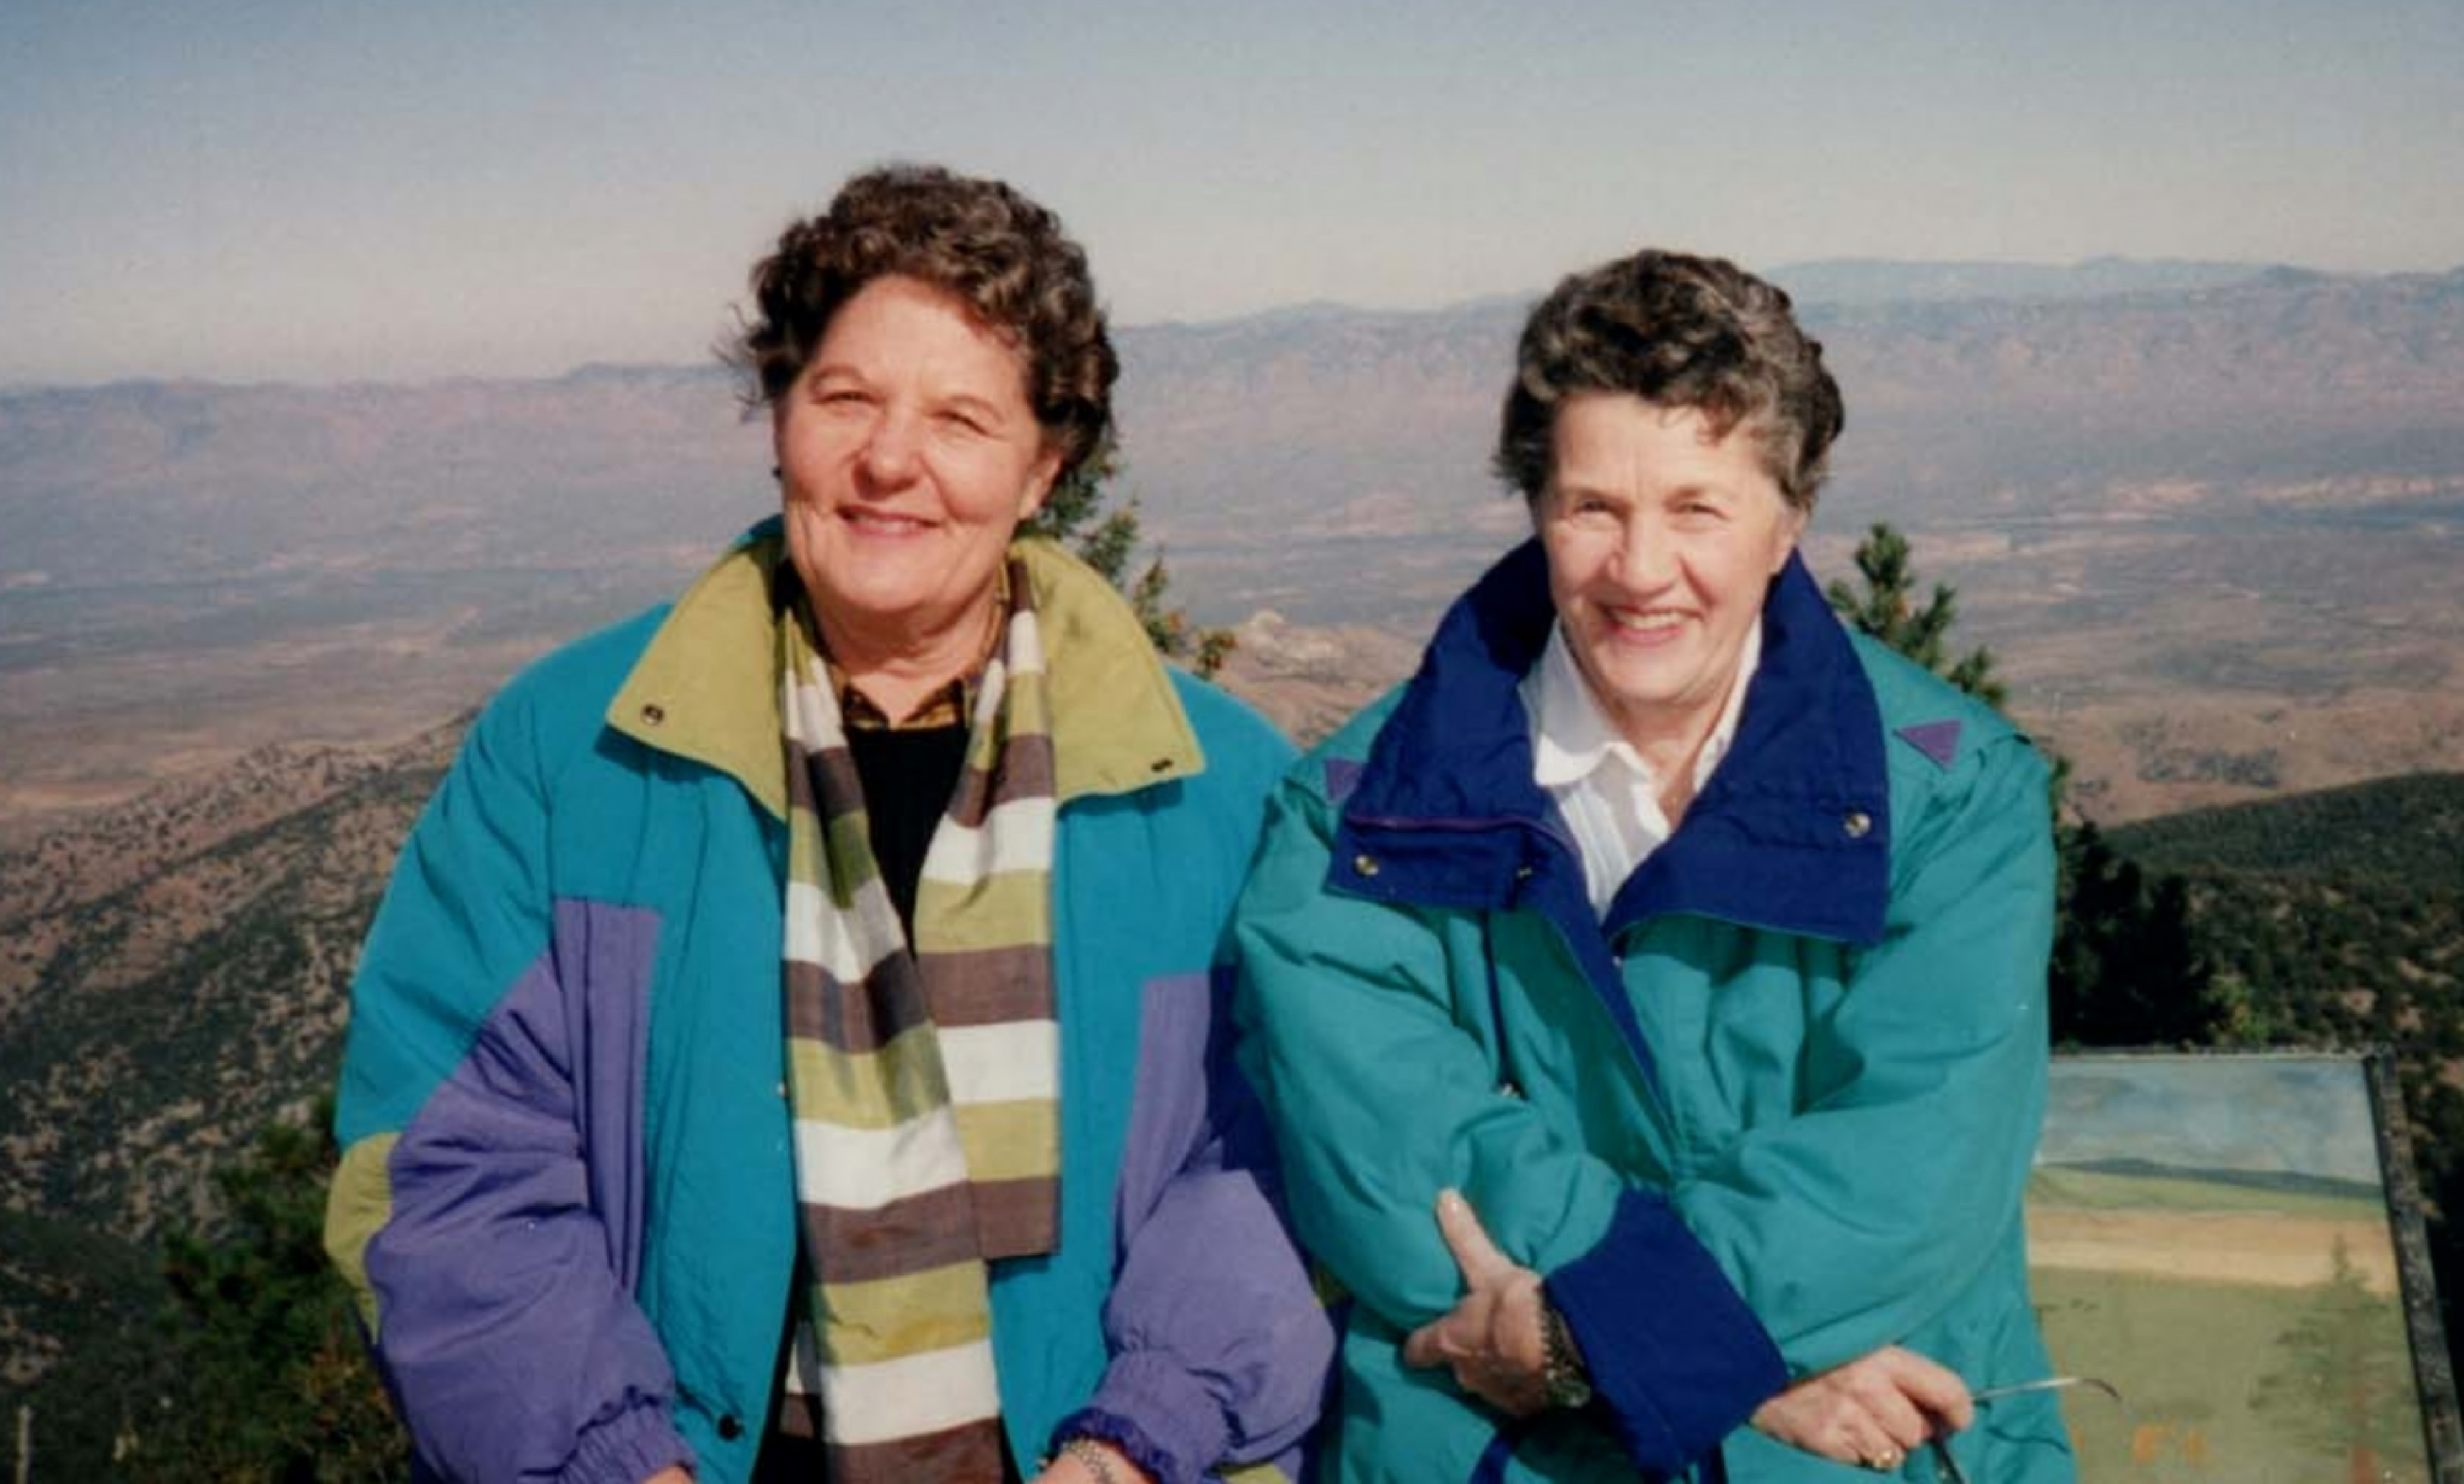 Henschel and Donahue pose smiling in front of scenic mountains in this faded photograph. The pair wear windbreakers in classic 80s colors.